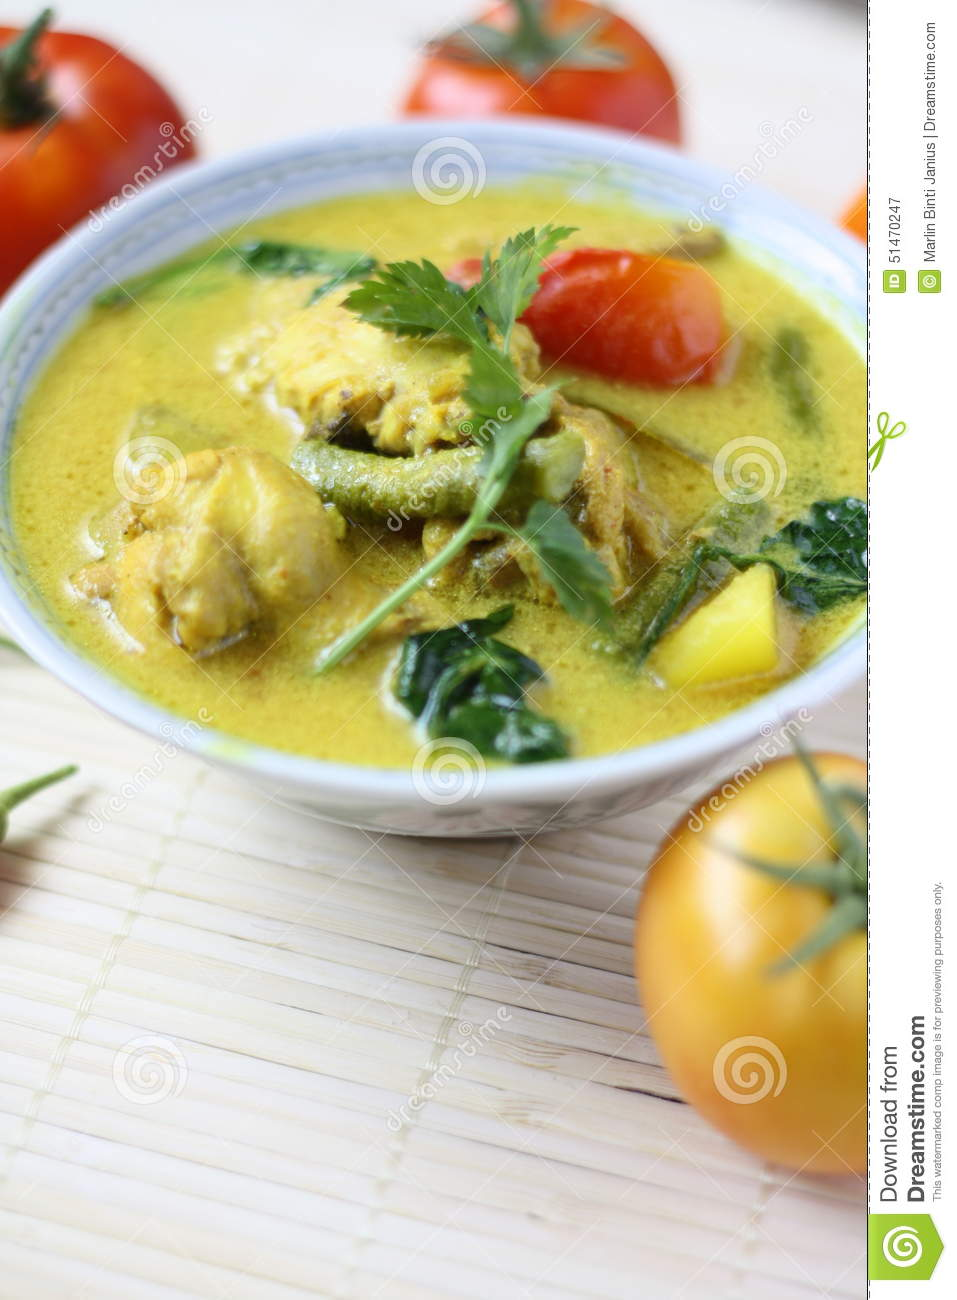 Malay cuisine masak lemak cili api ikan tenggiri stock for Authentic malaysian cuisine